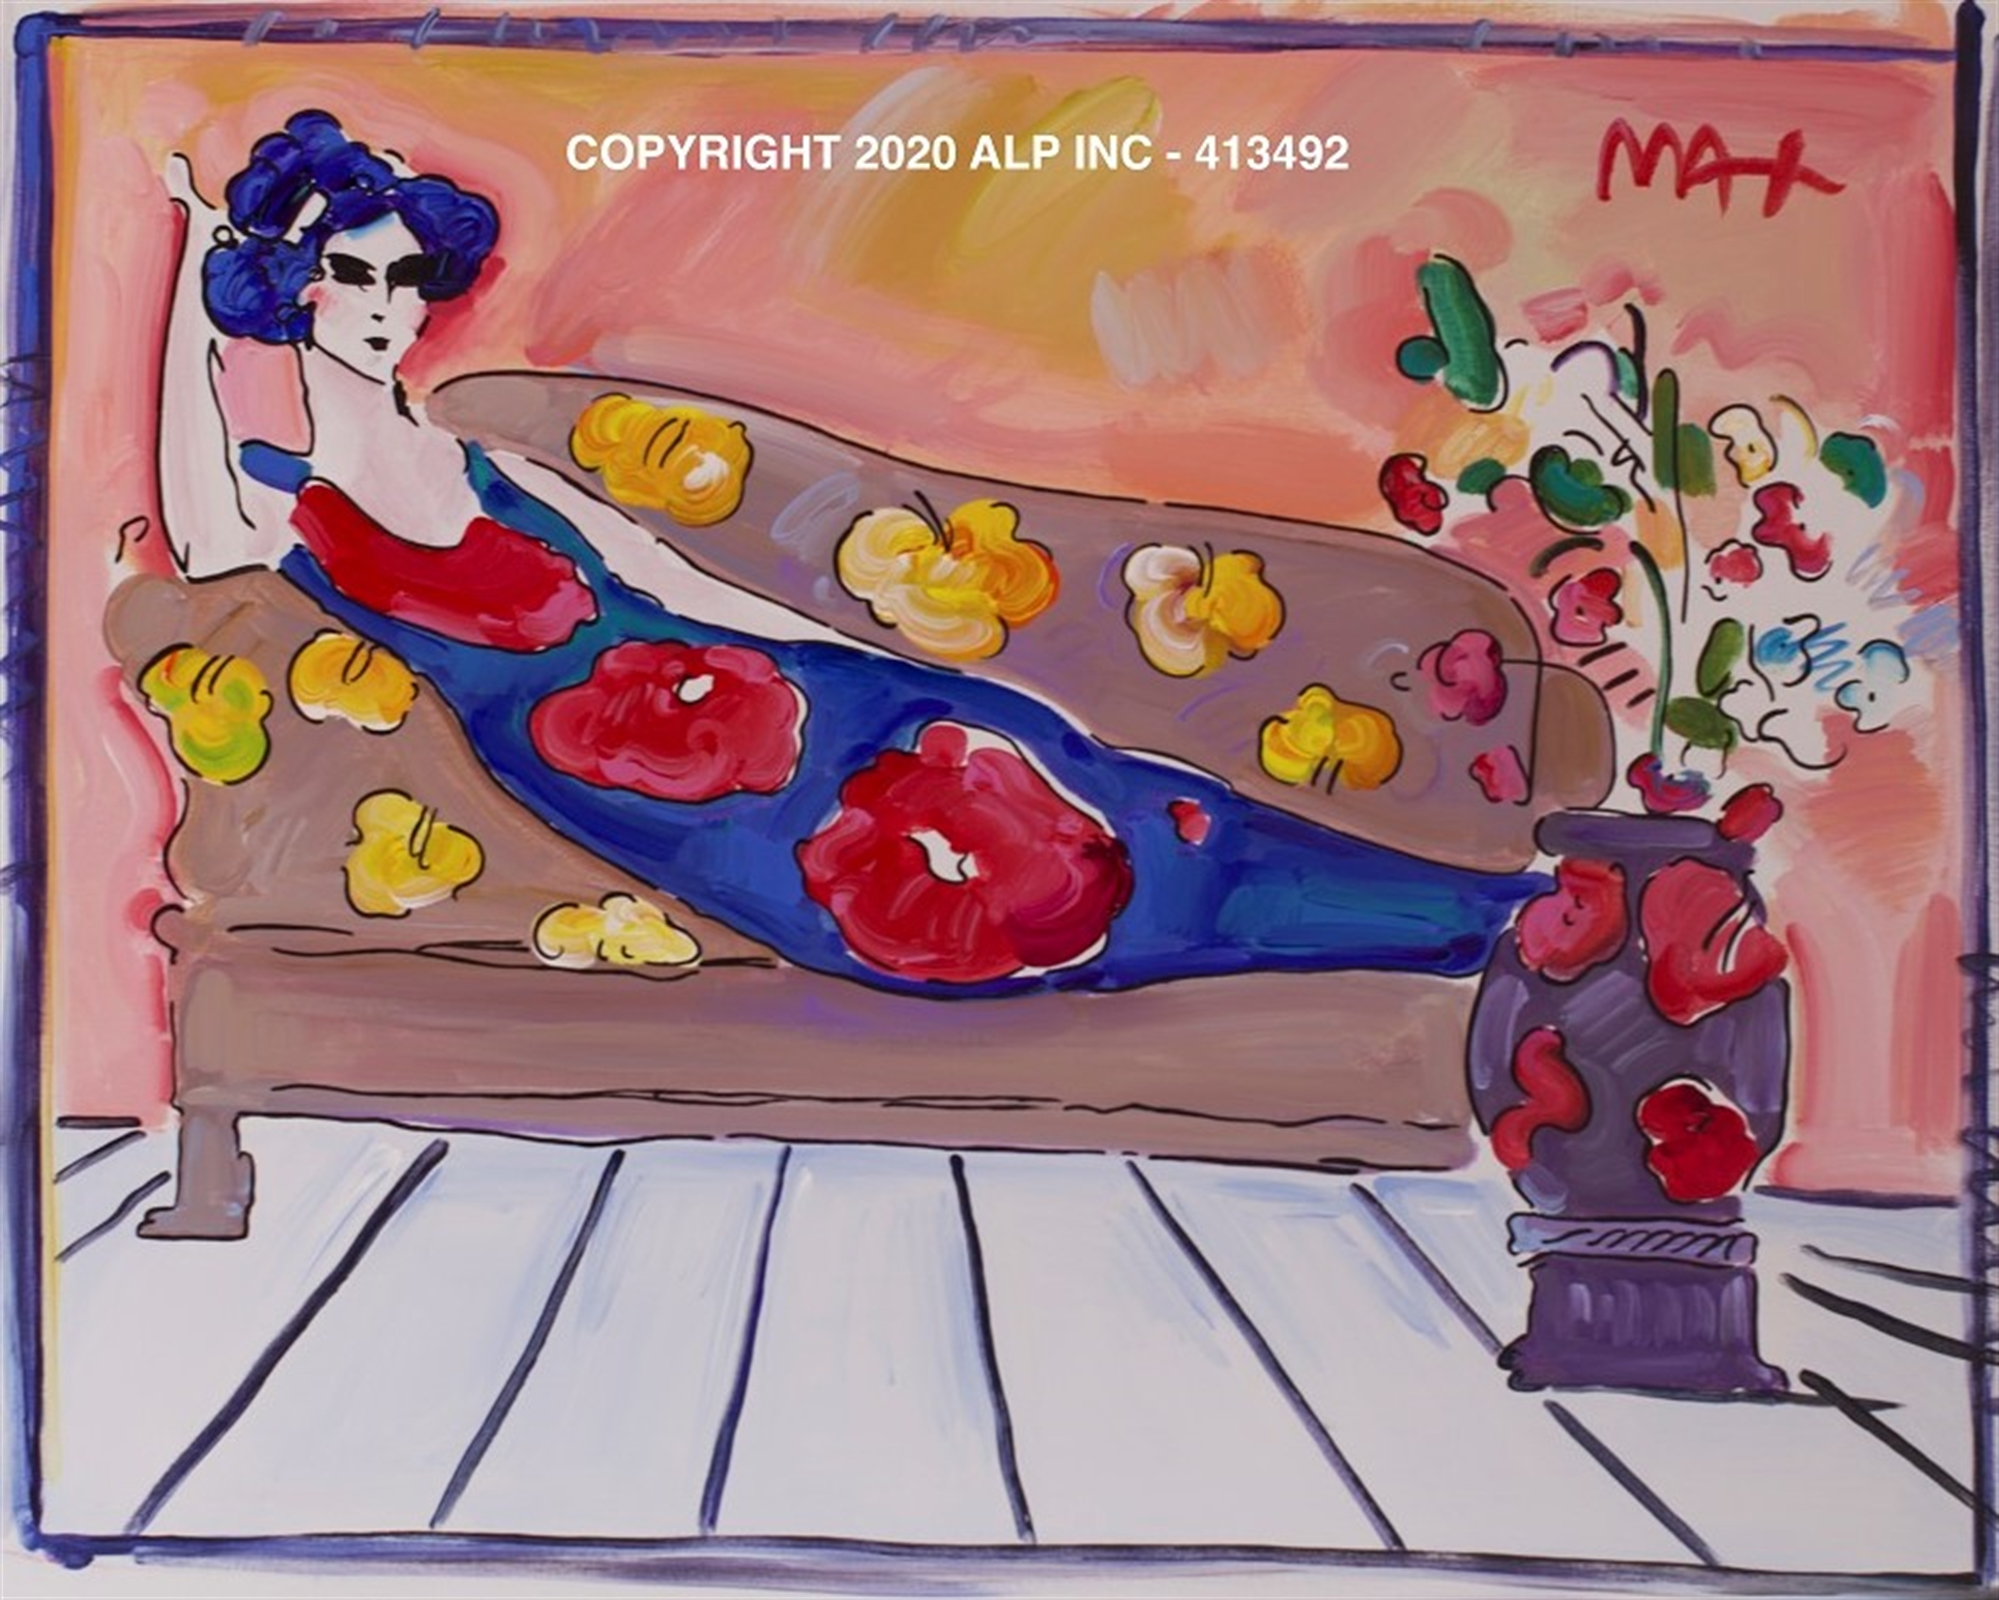 Reclining Woman Ver. I #2 - Vintage Collection by Peter Max